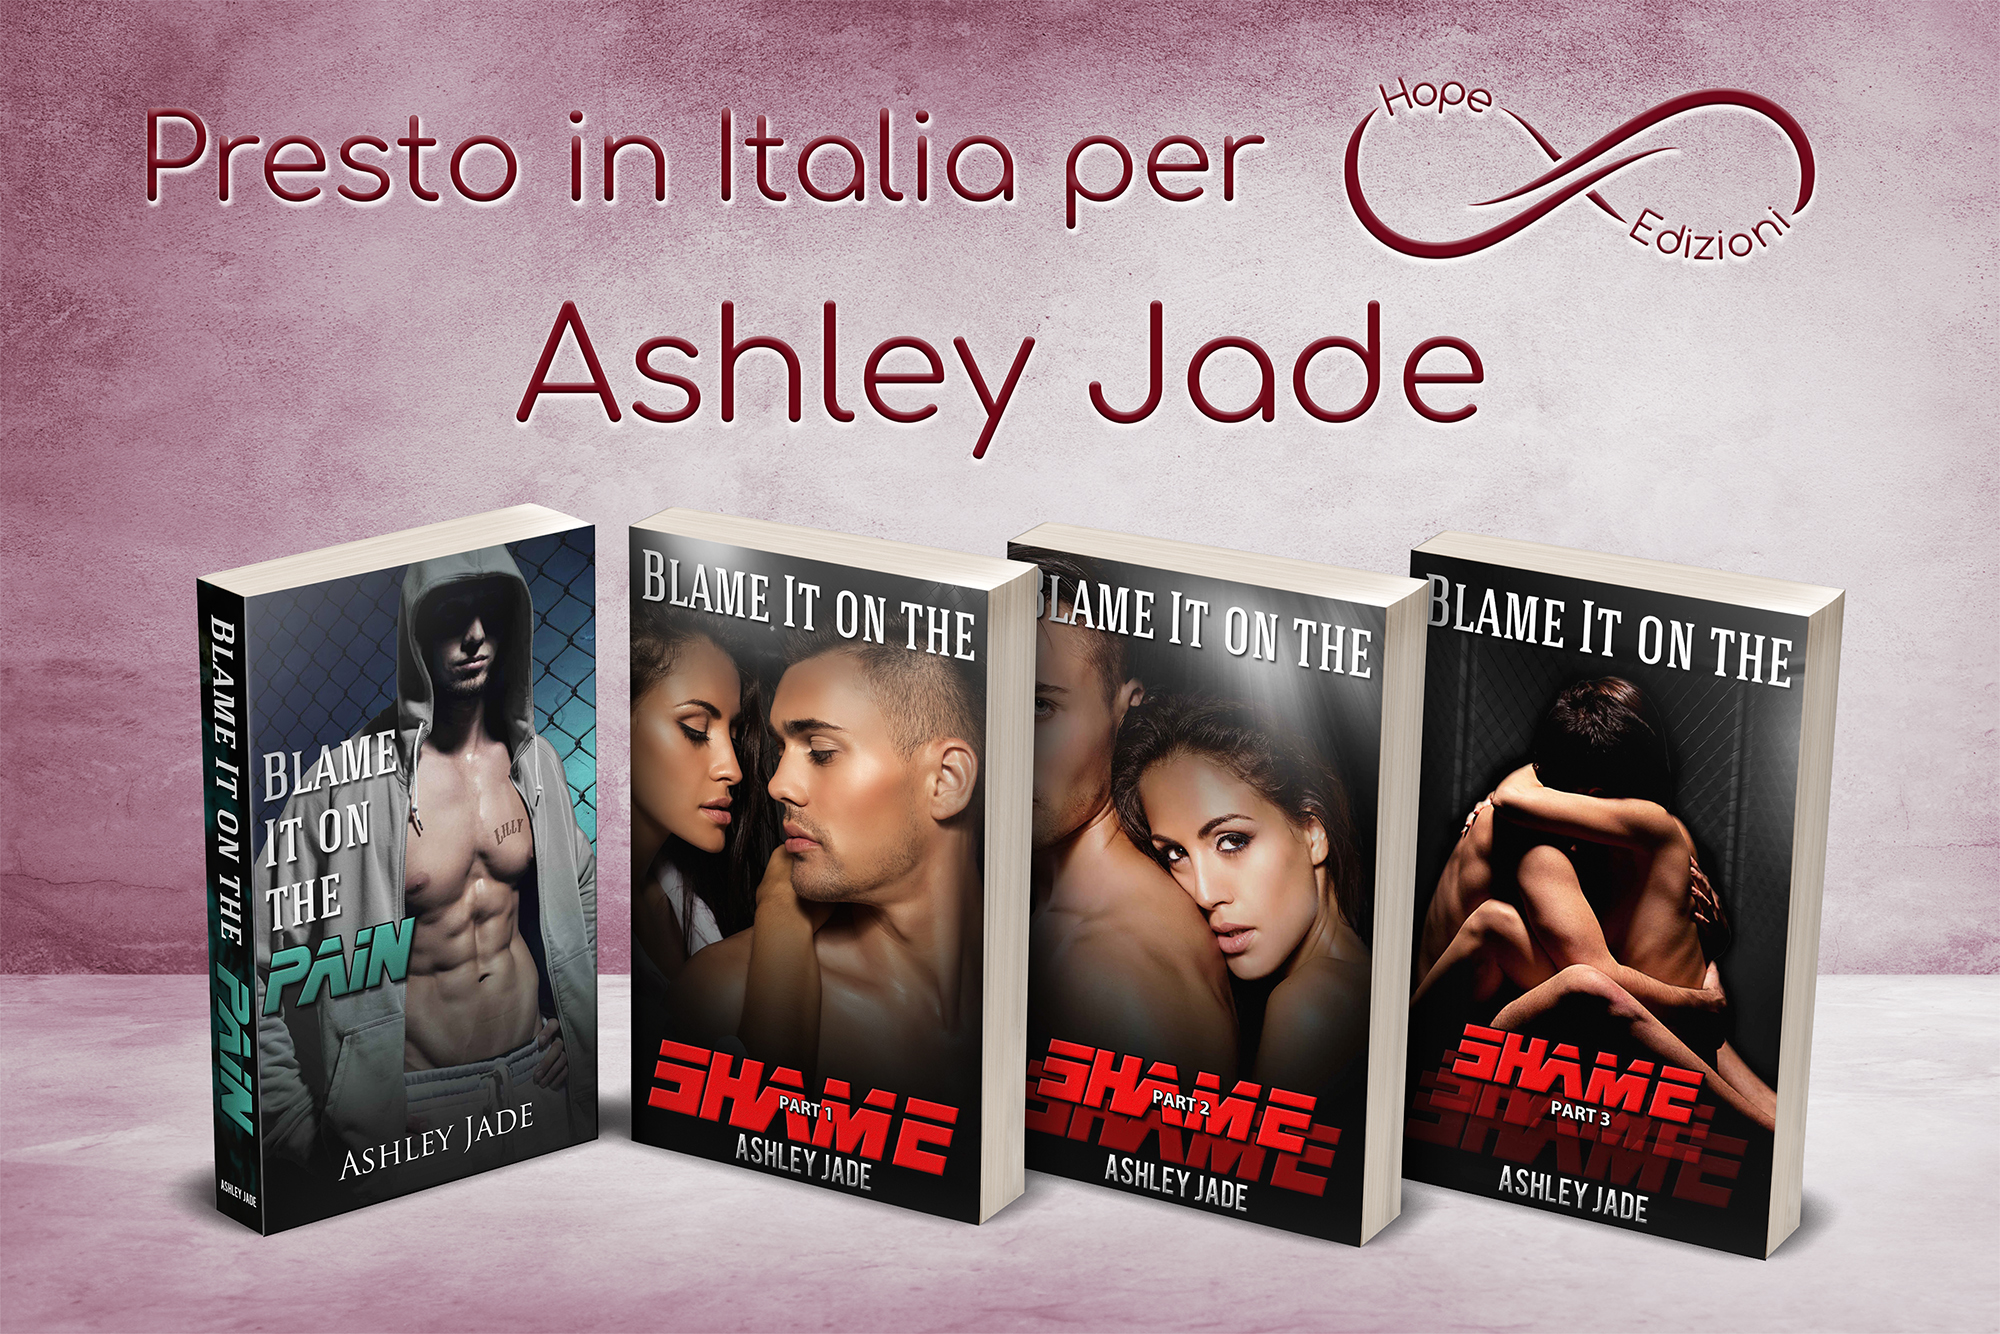 Presto in Italia… Ashley Jade!